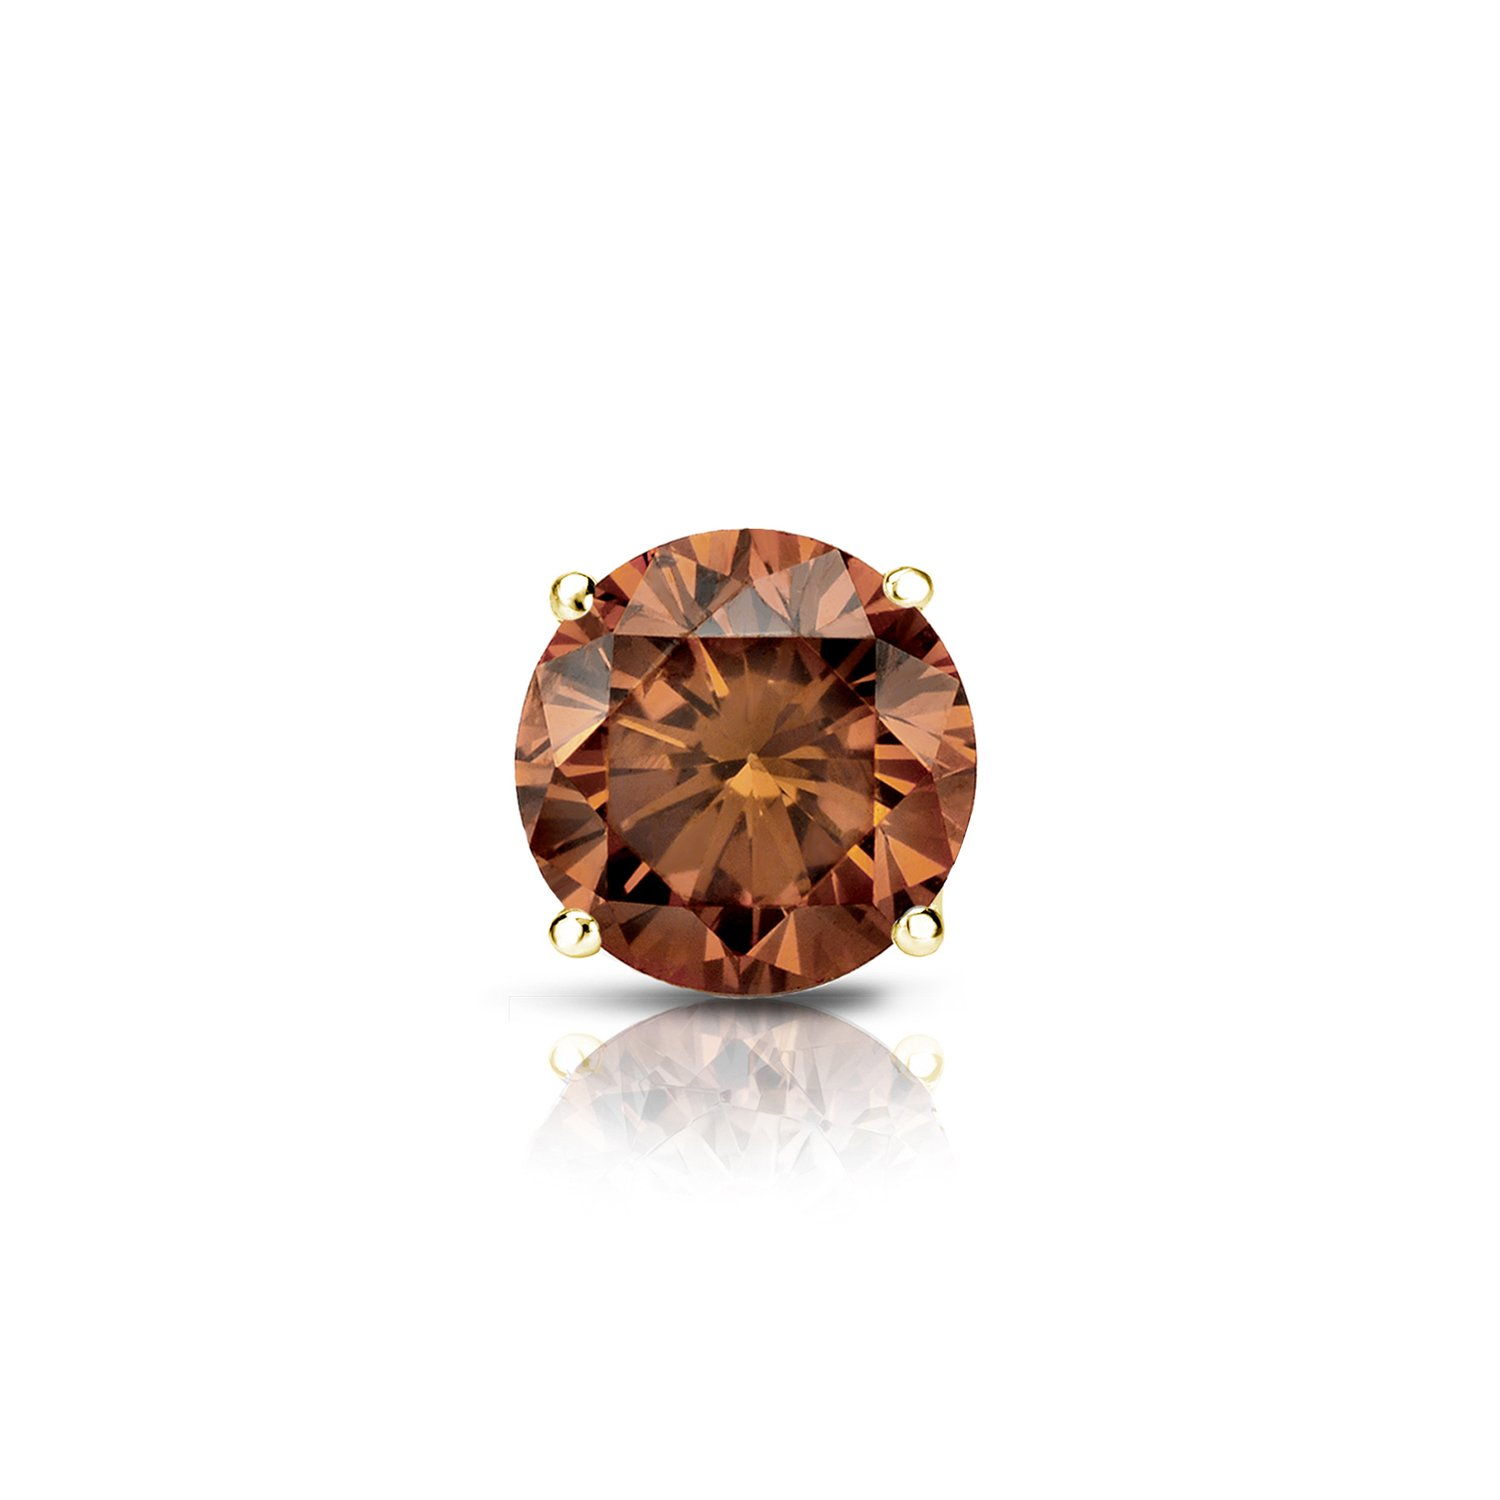 Diamond Wish 14k Yellow Gold Single Stud Round Brown Diamond Earring (1/2 ct, Brown, SI1-SI2) 4-Prong Basket with Push-Back by Diamond Wish (Image #1)